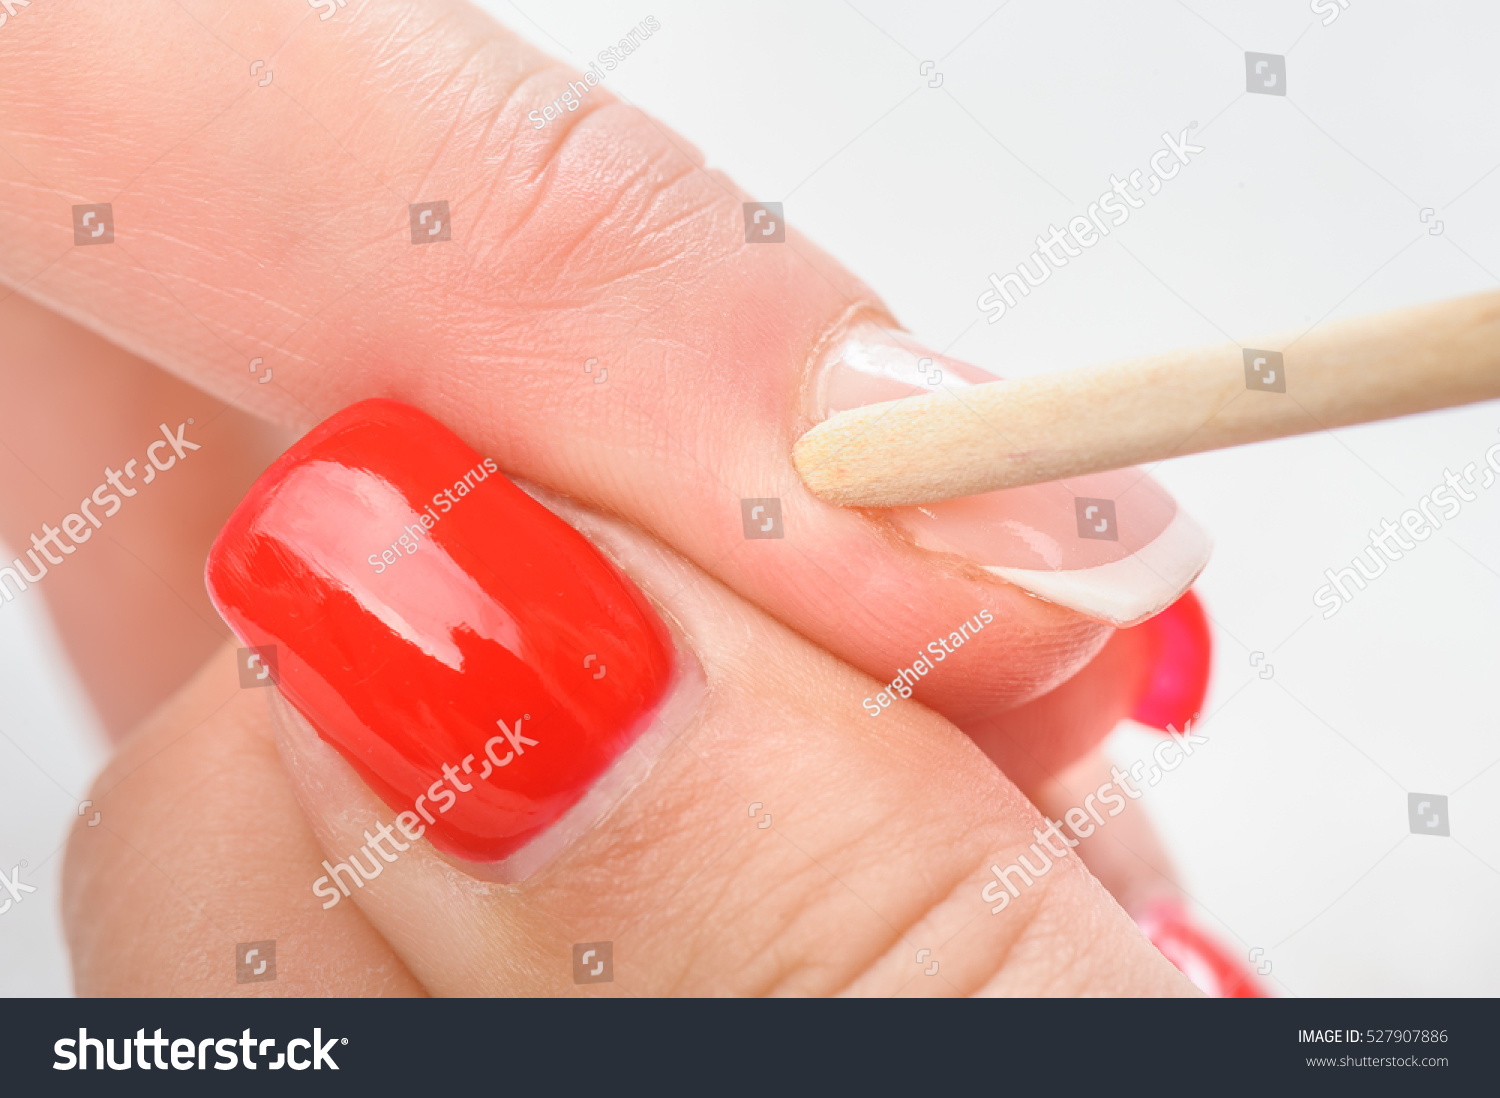 Nail Salon Hands Beauty Treatment Cuticles Stock Photo (Royalty Free ...